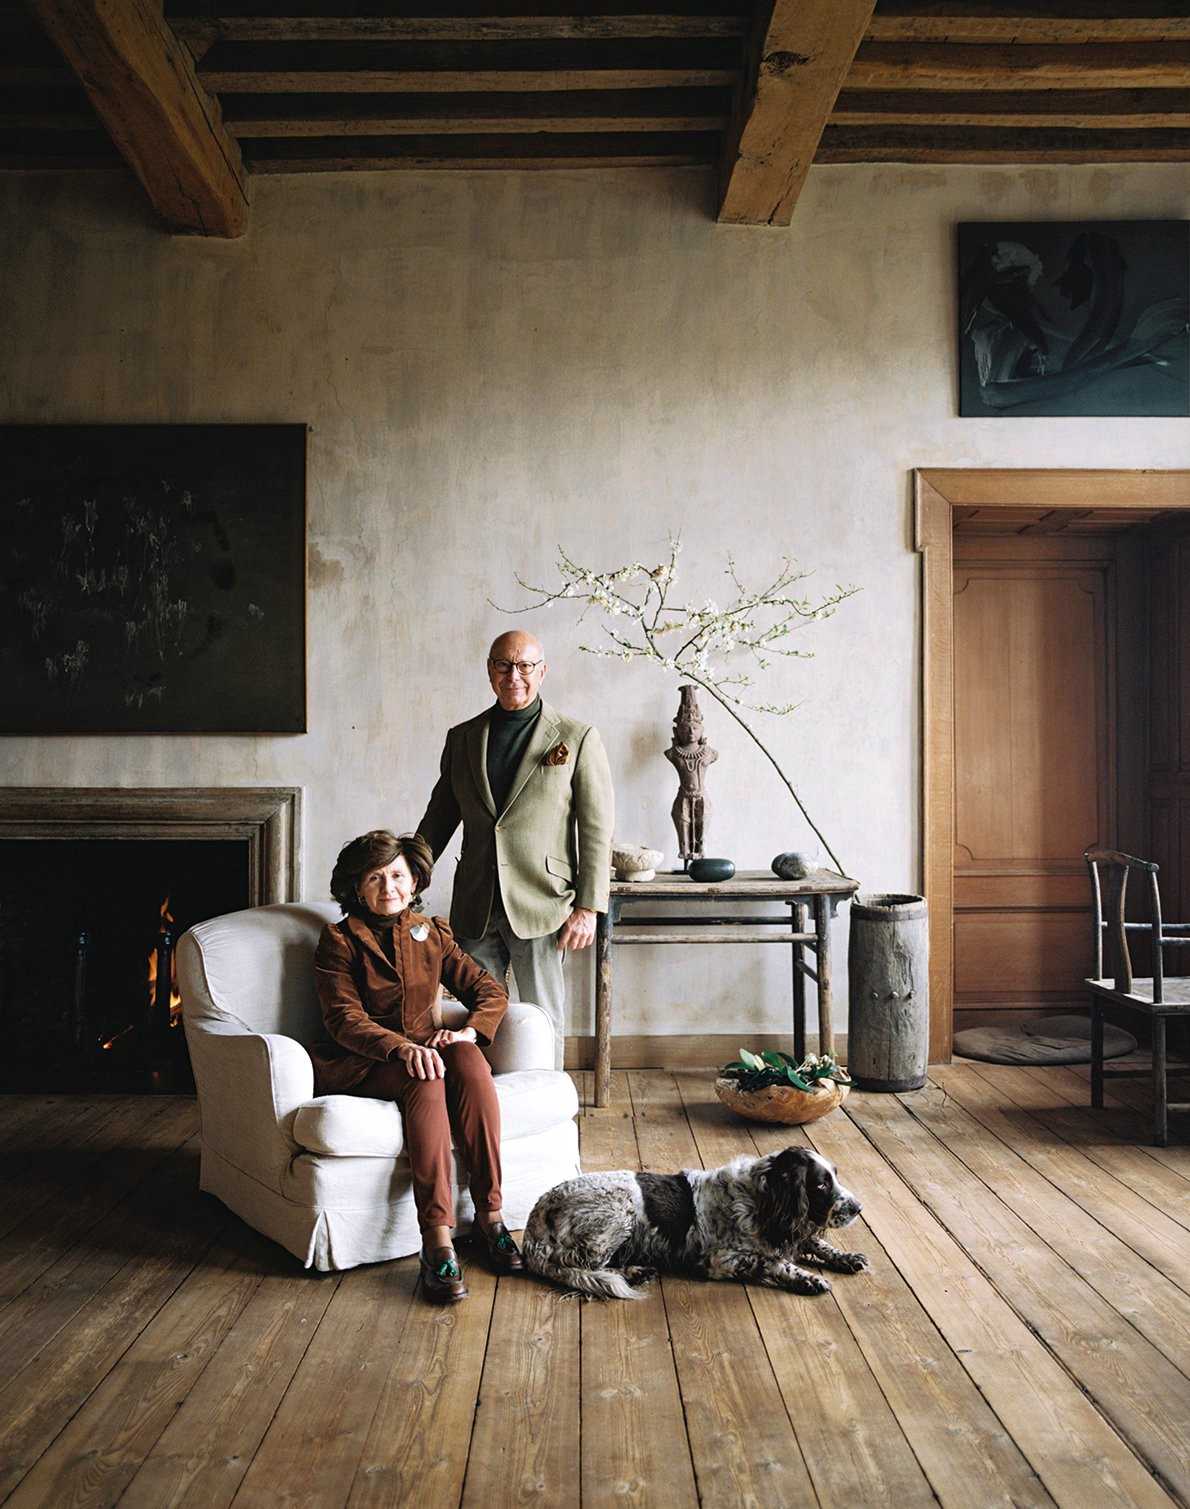 May and Axel Vervoordt in the Oriental Salon on the first floor of the castle, with their family dog Inu. Vervoordt is renowned for telling stories using a sensitive palette of mediums to share his vision of life where philosophy plays a key role. (Photo: Mariluz Vidal, Living In)